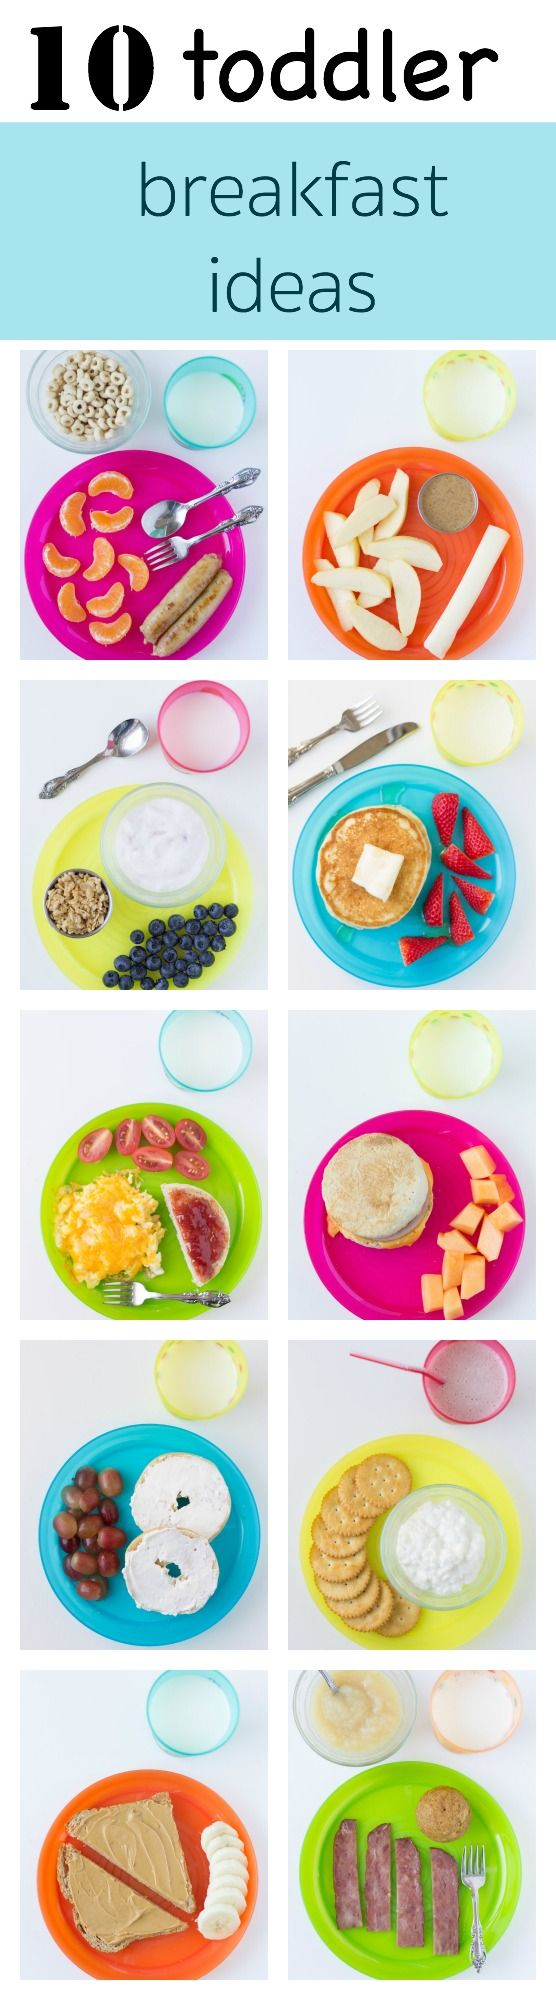 ring shop 10 Toddler Breakfast Ideas   Culinary Hill